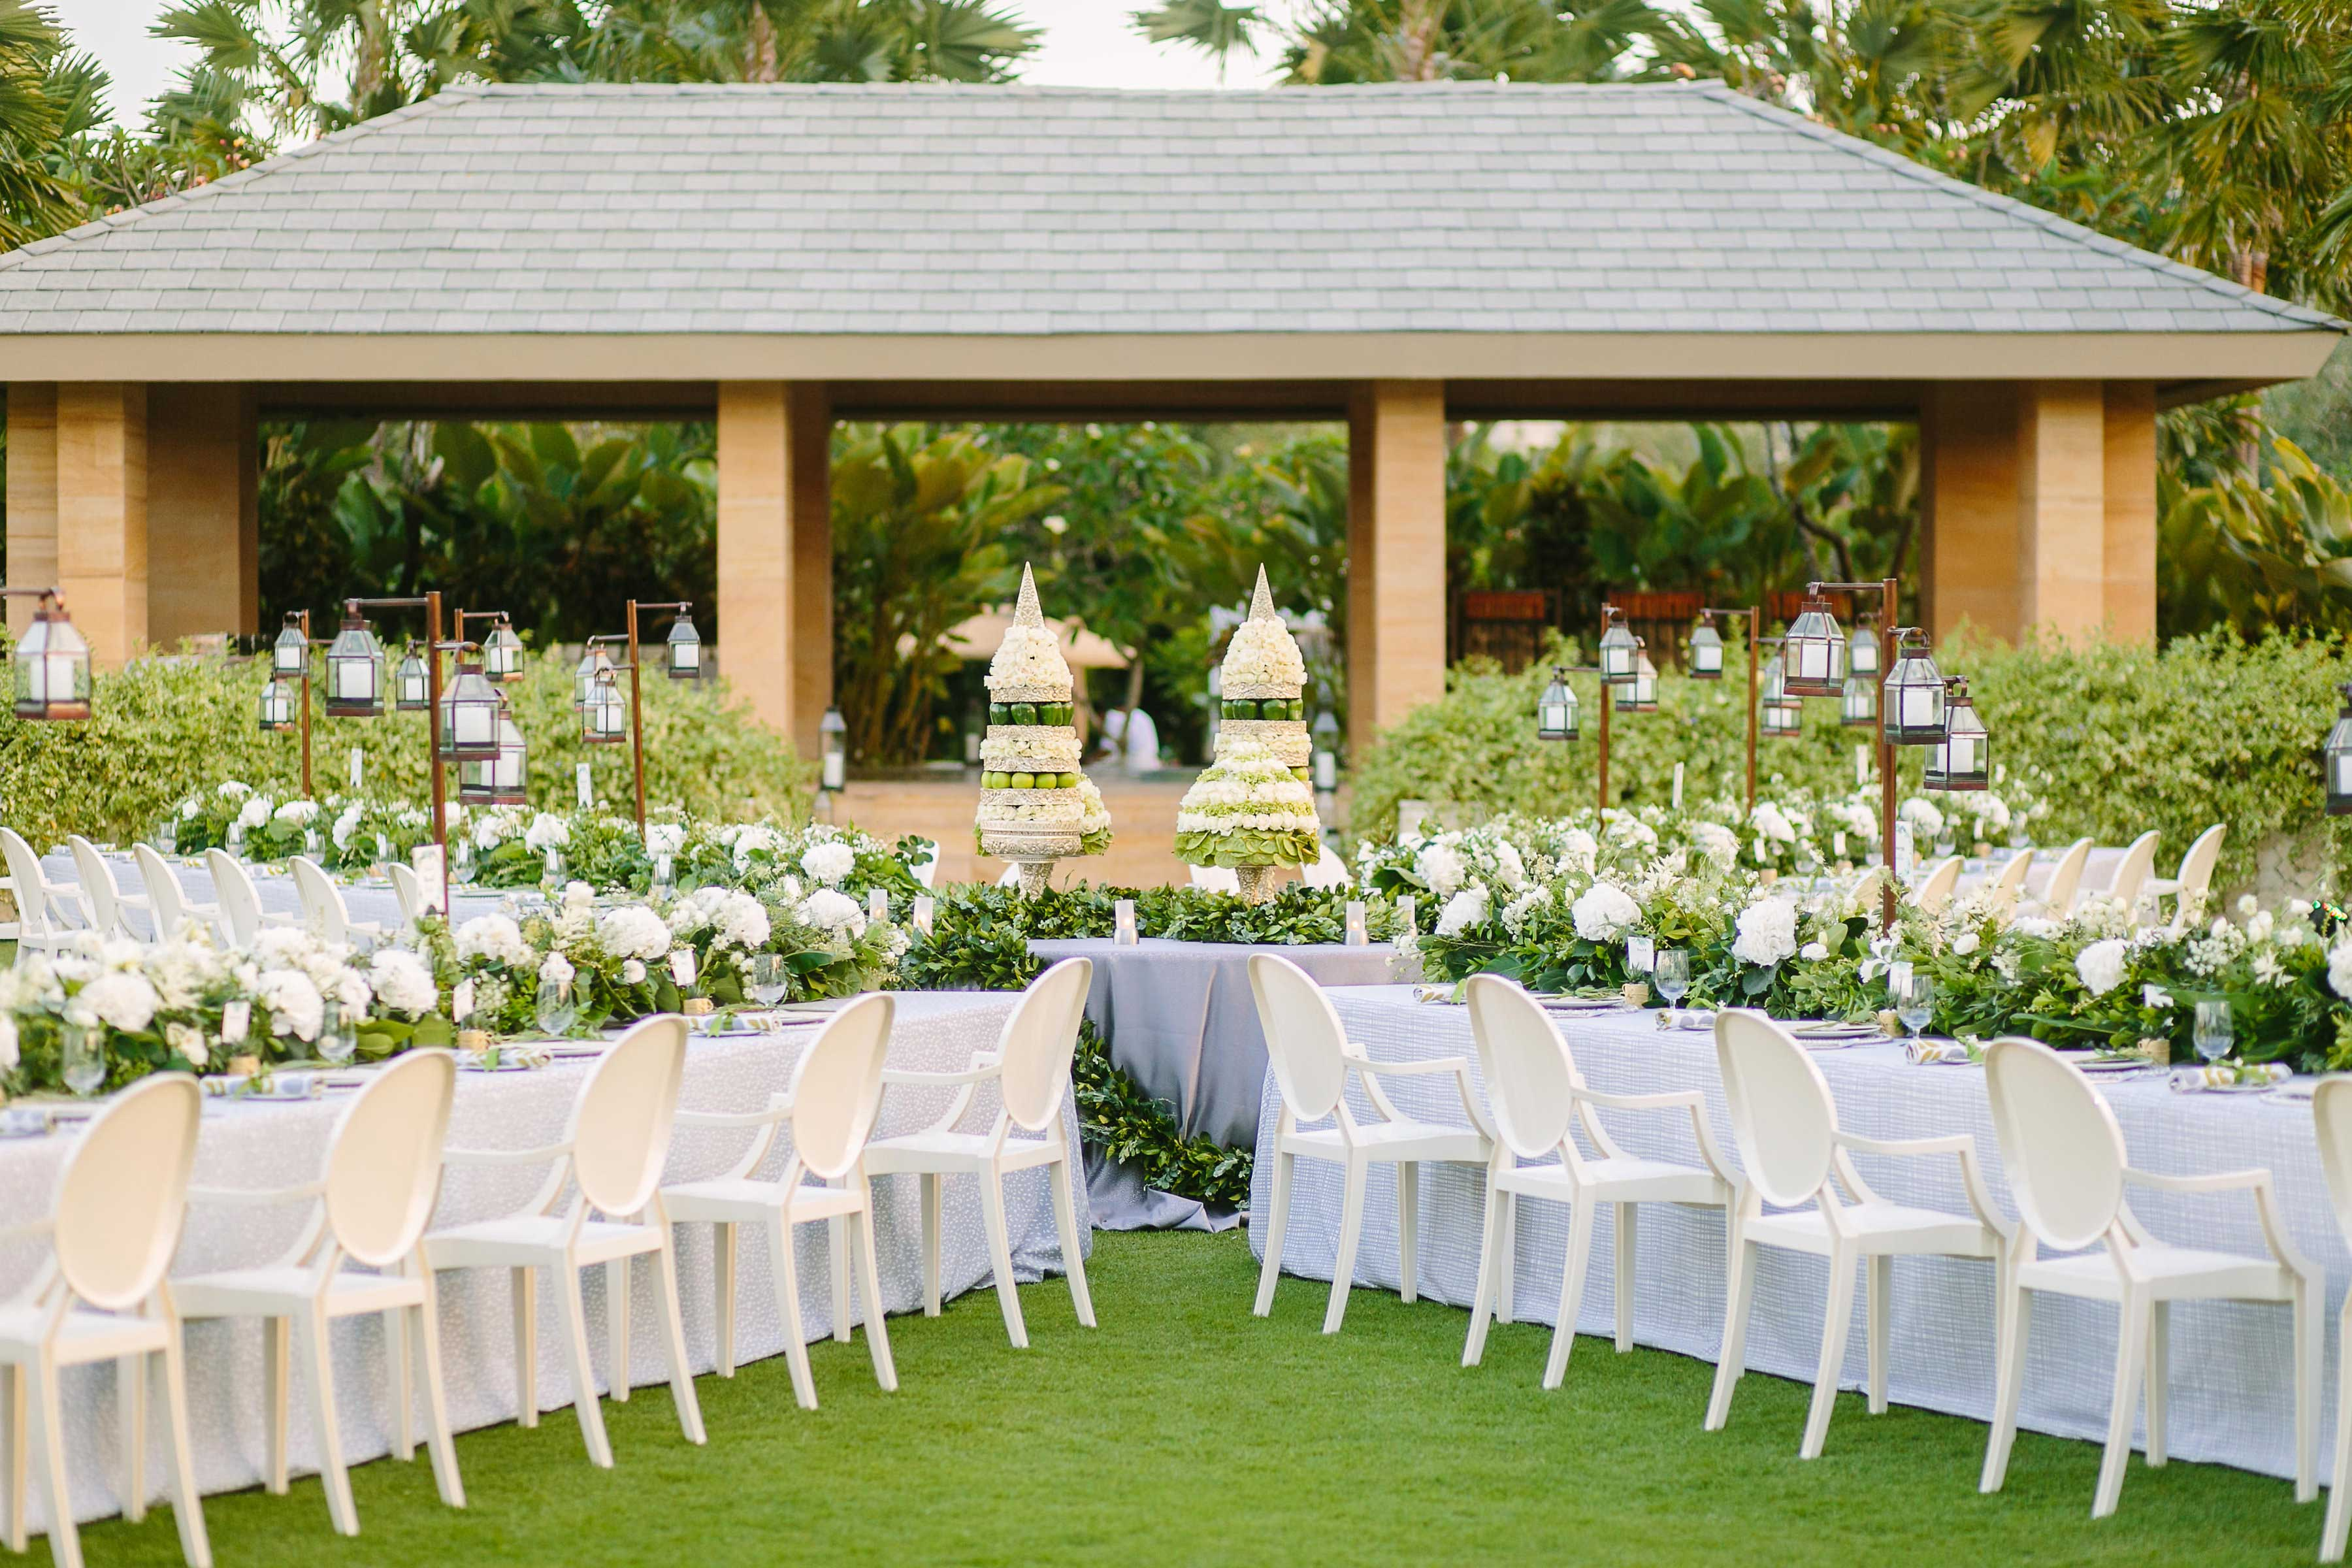 Outdoor wedding reception inspiration in Bali Marry at The Mulia event